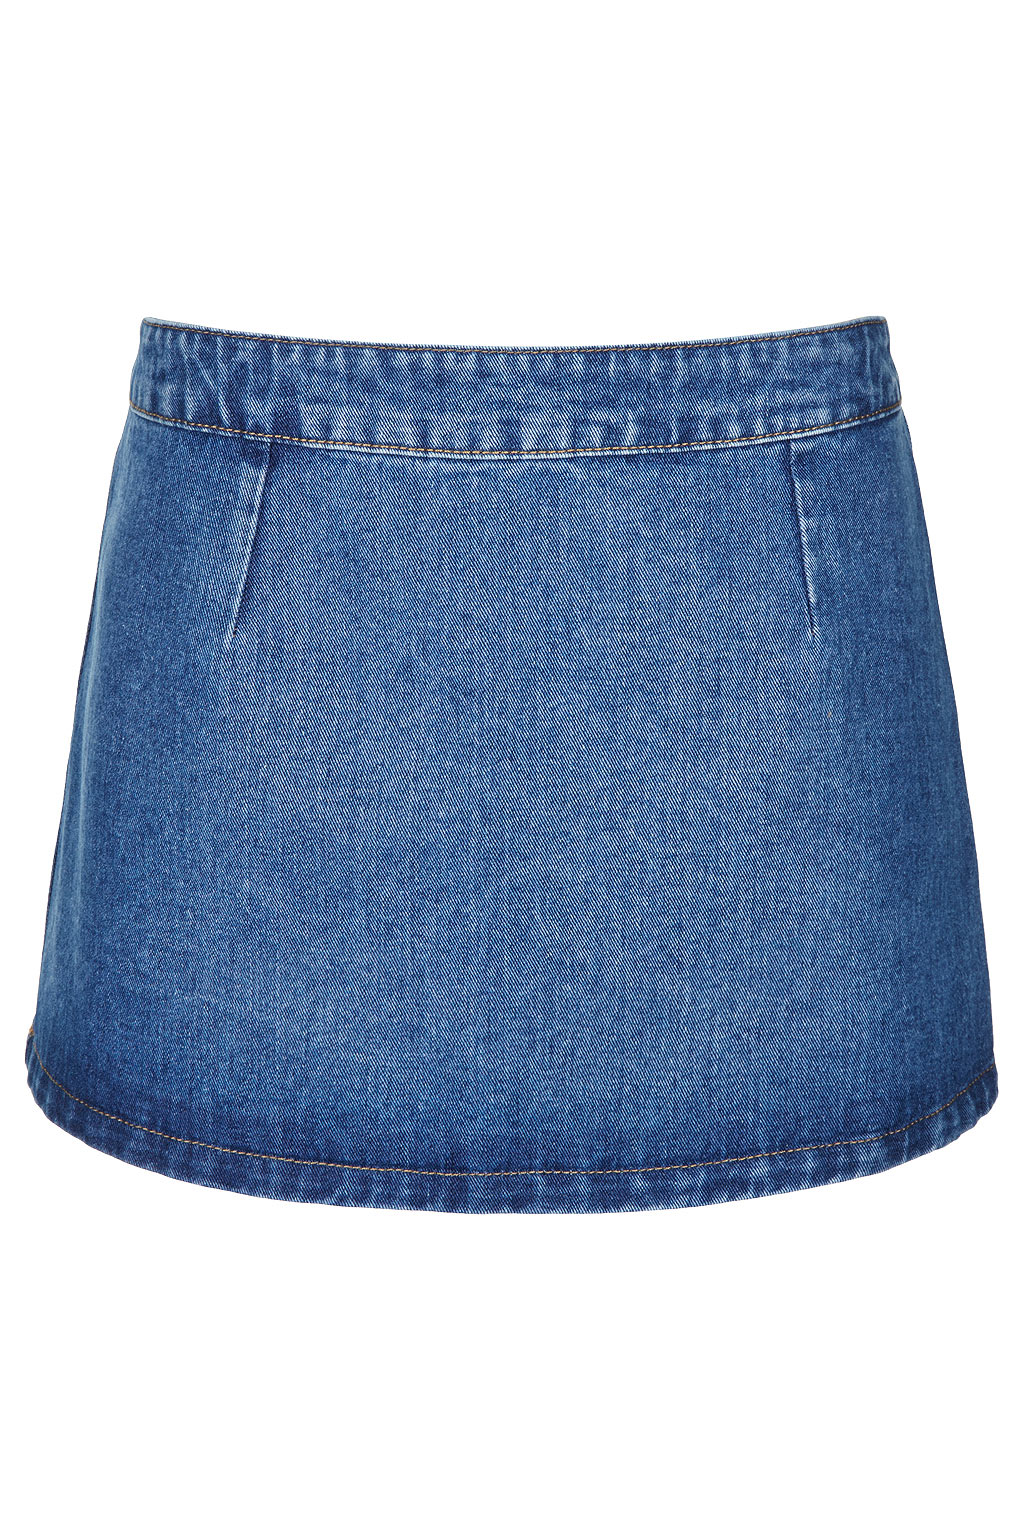 topshop moto denim skirt in blue mid lyst